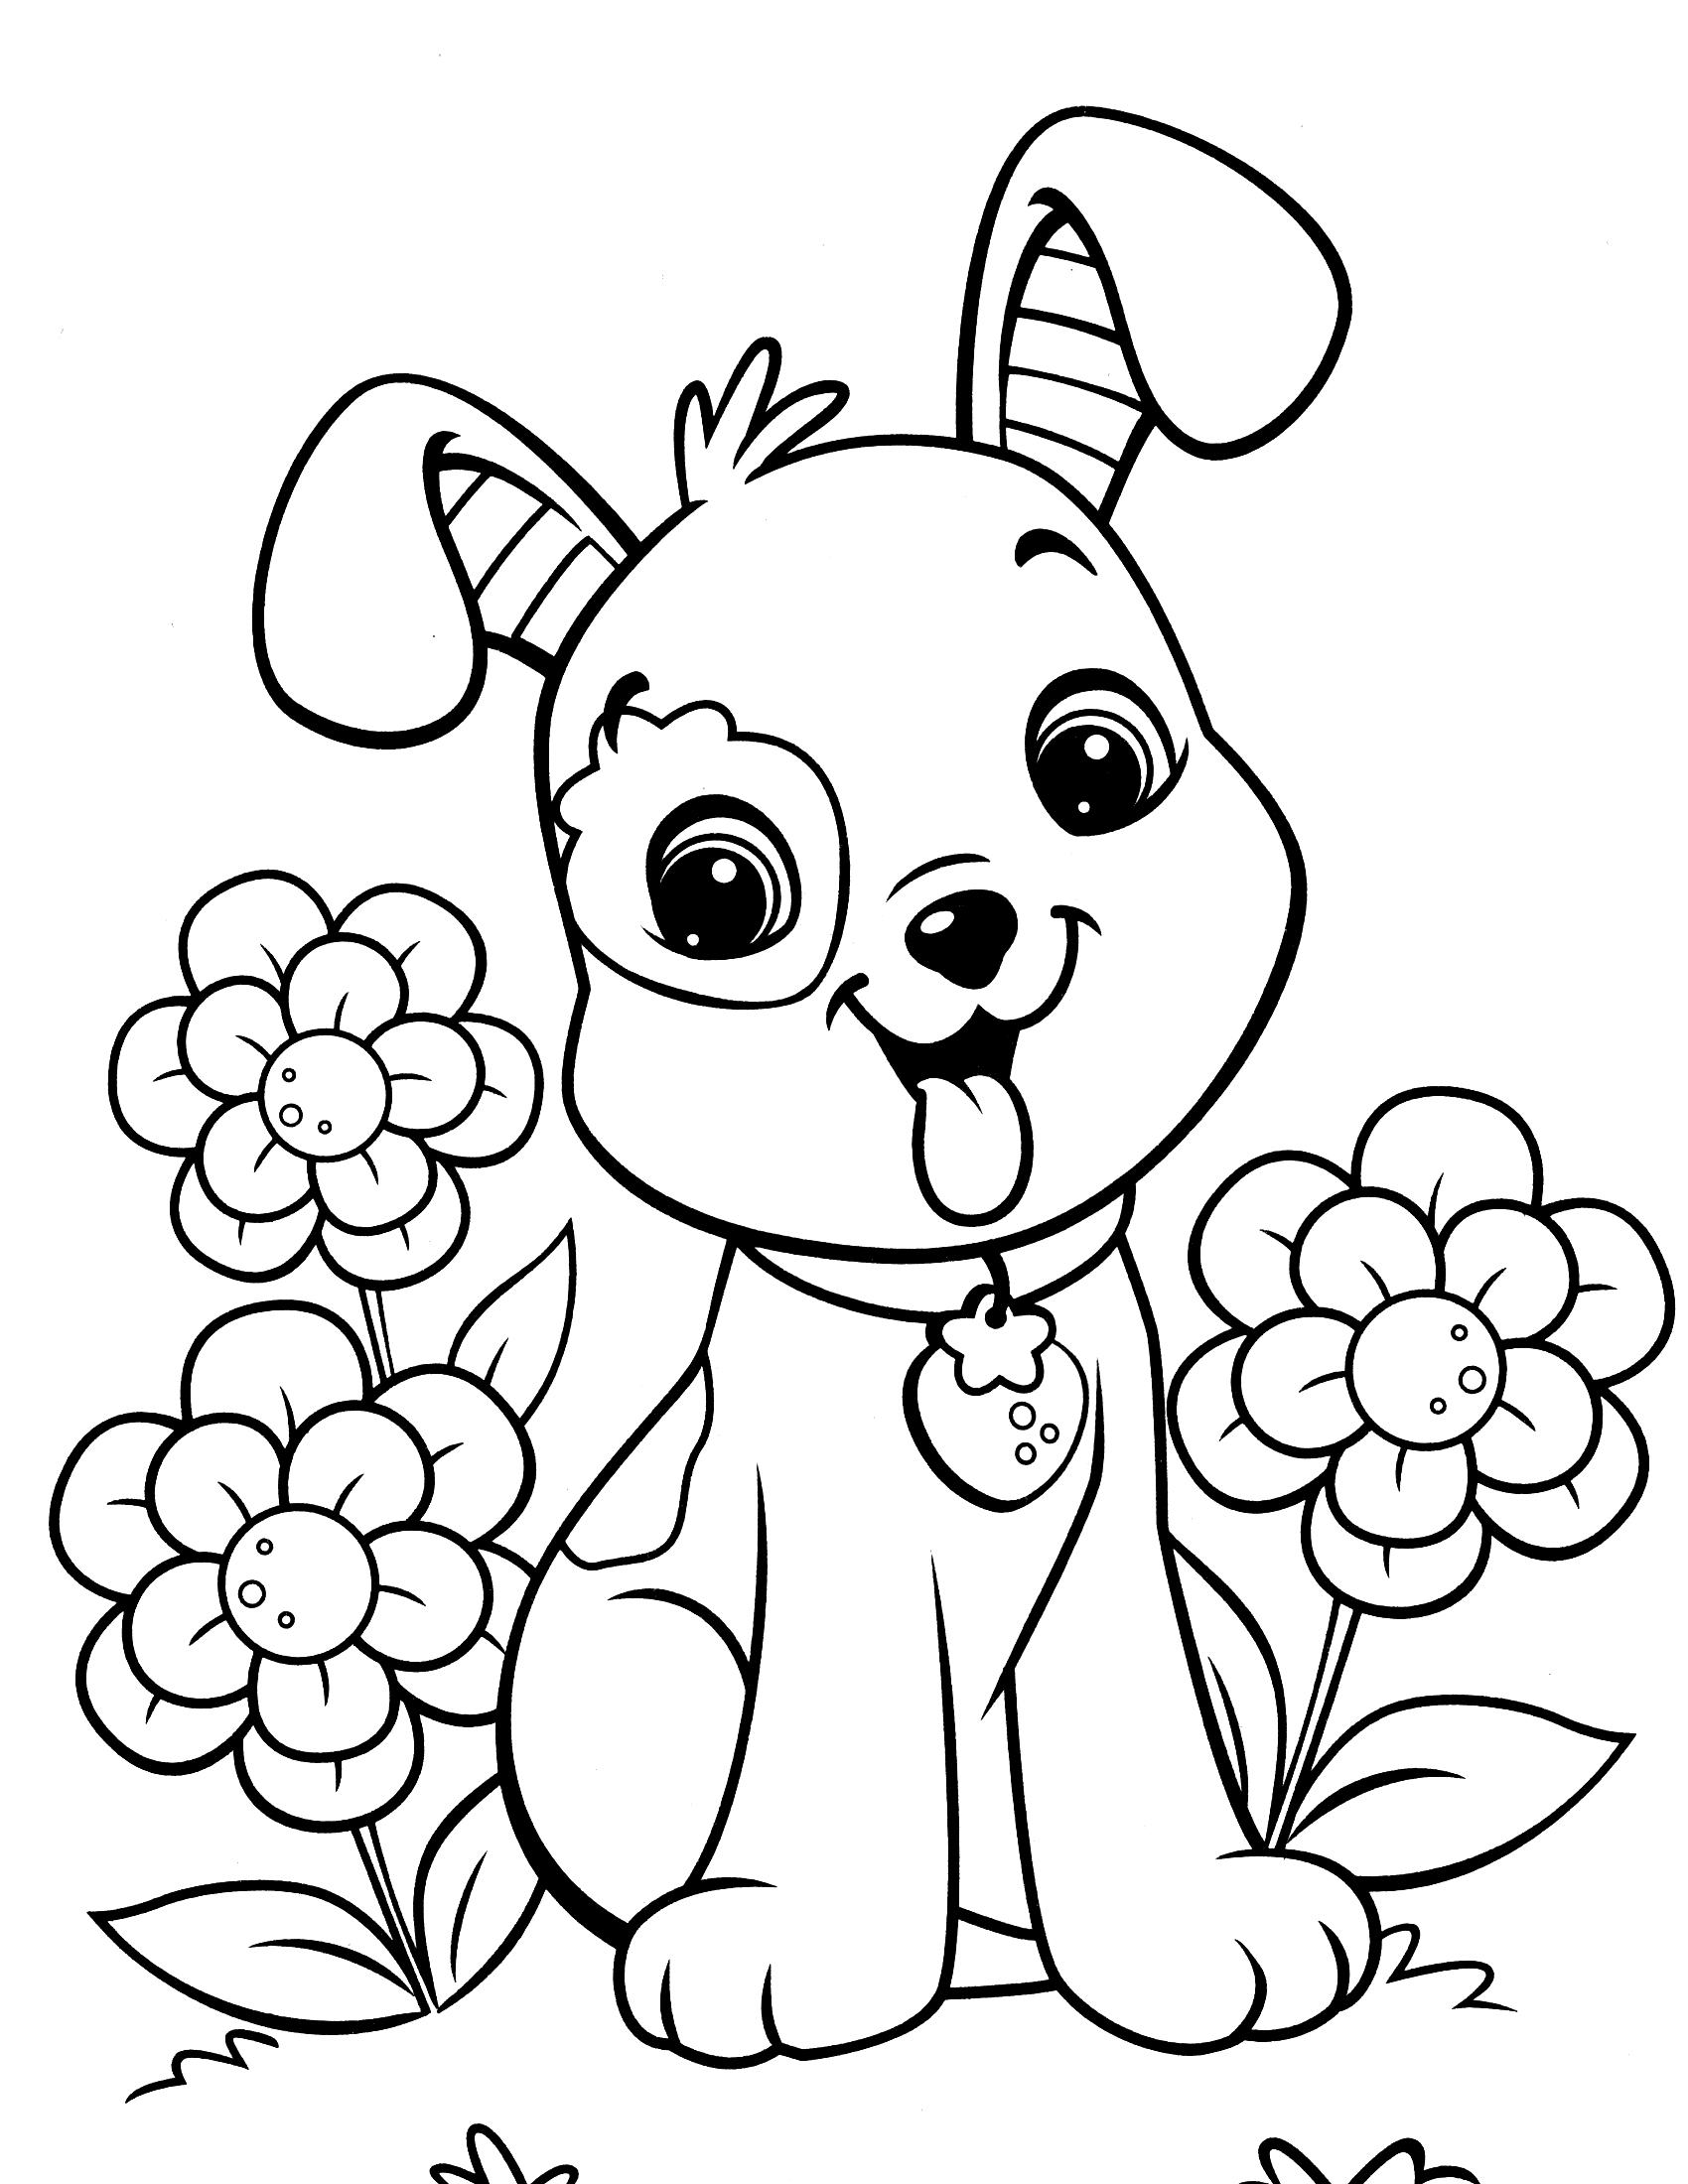 Cute dog coloring pages to download and print for free for Coloring pages of dogs